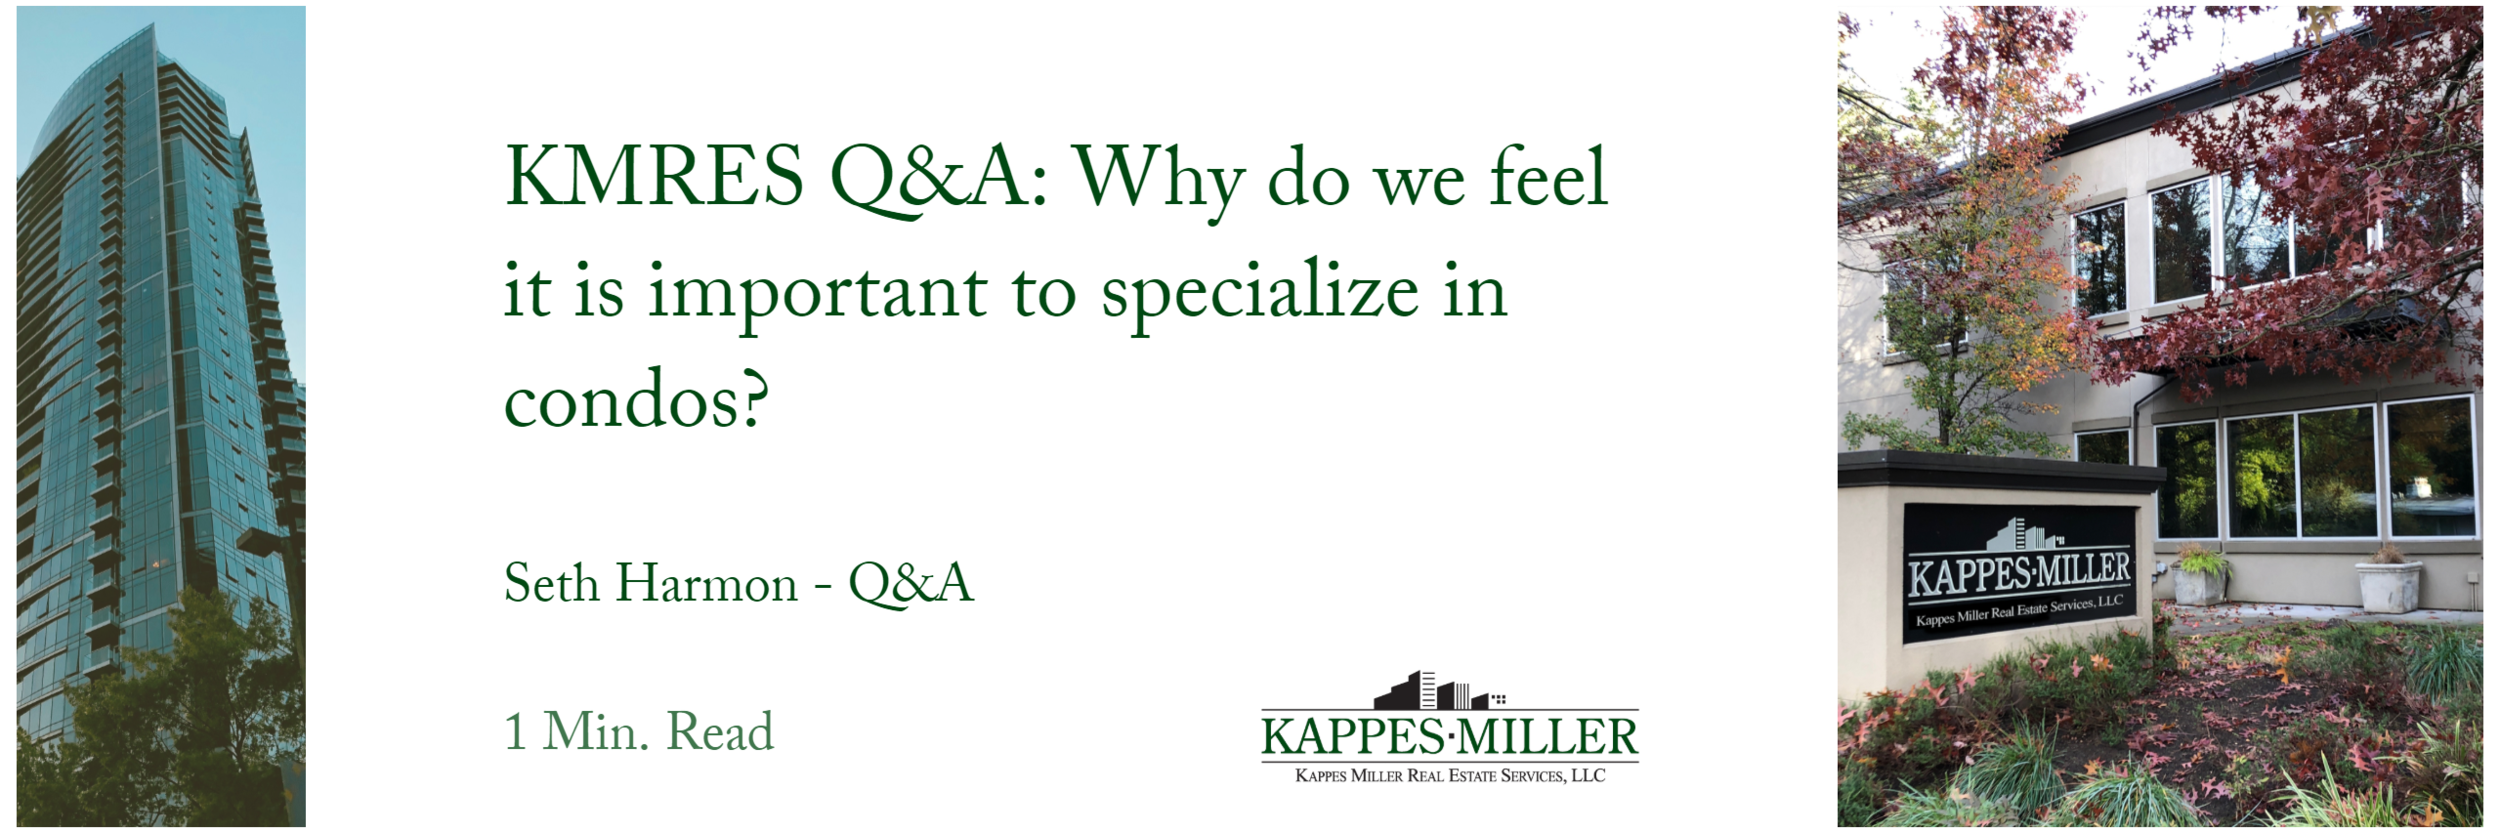 Kappes Miller Real Estate Services Q&A Specialize in Condos Blog Post.png